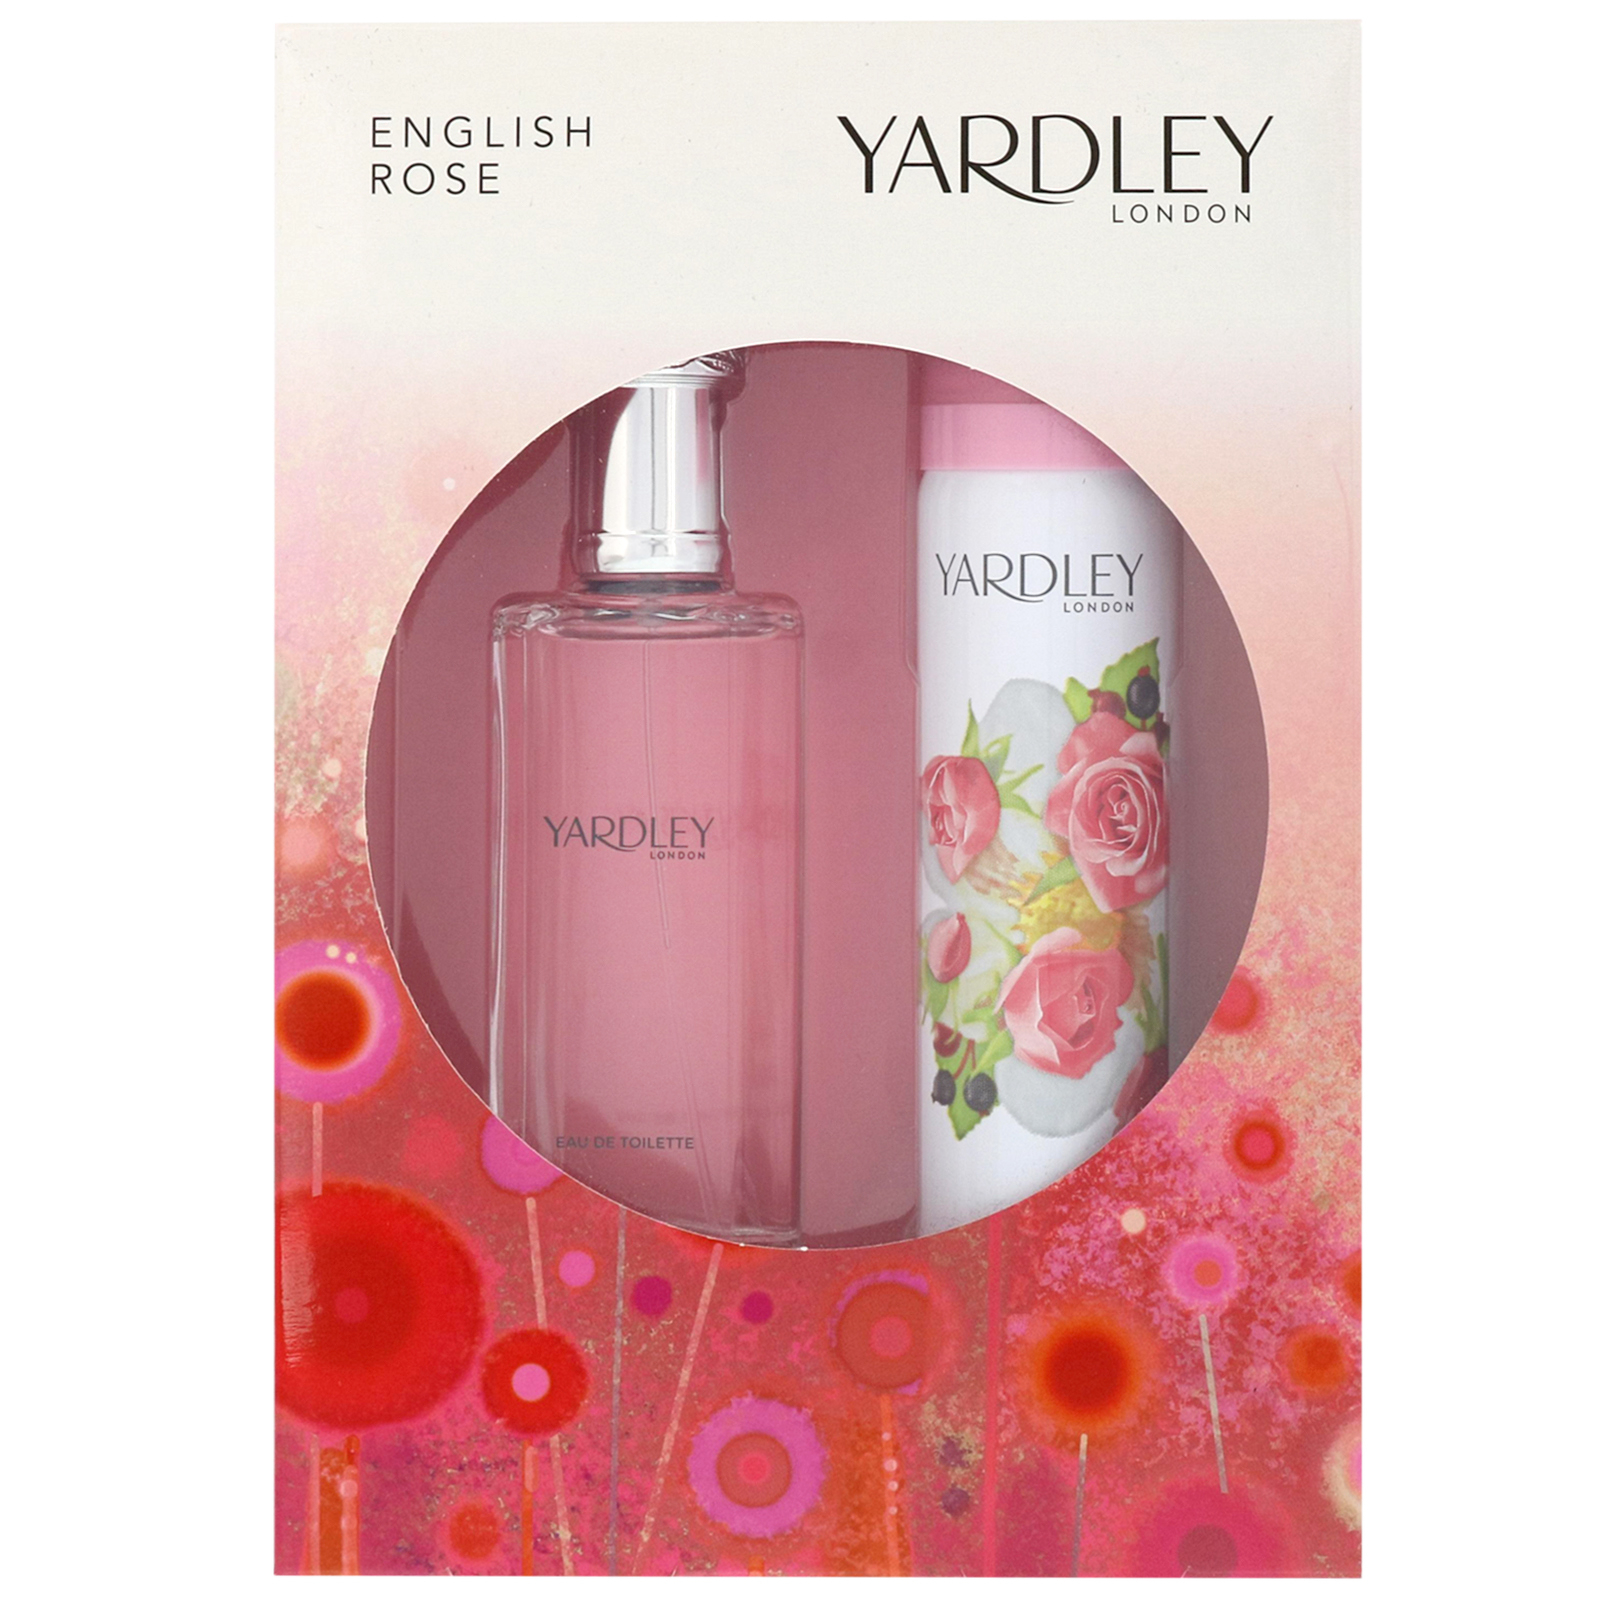 Yardley English Rose Eau de Toilette Spray 50ml Gift Set